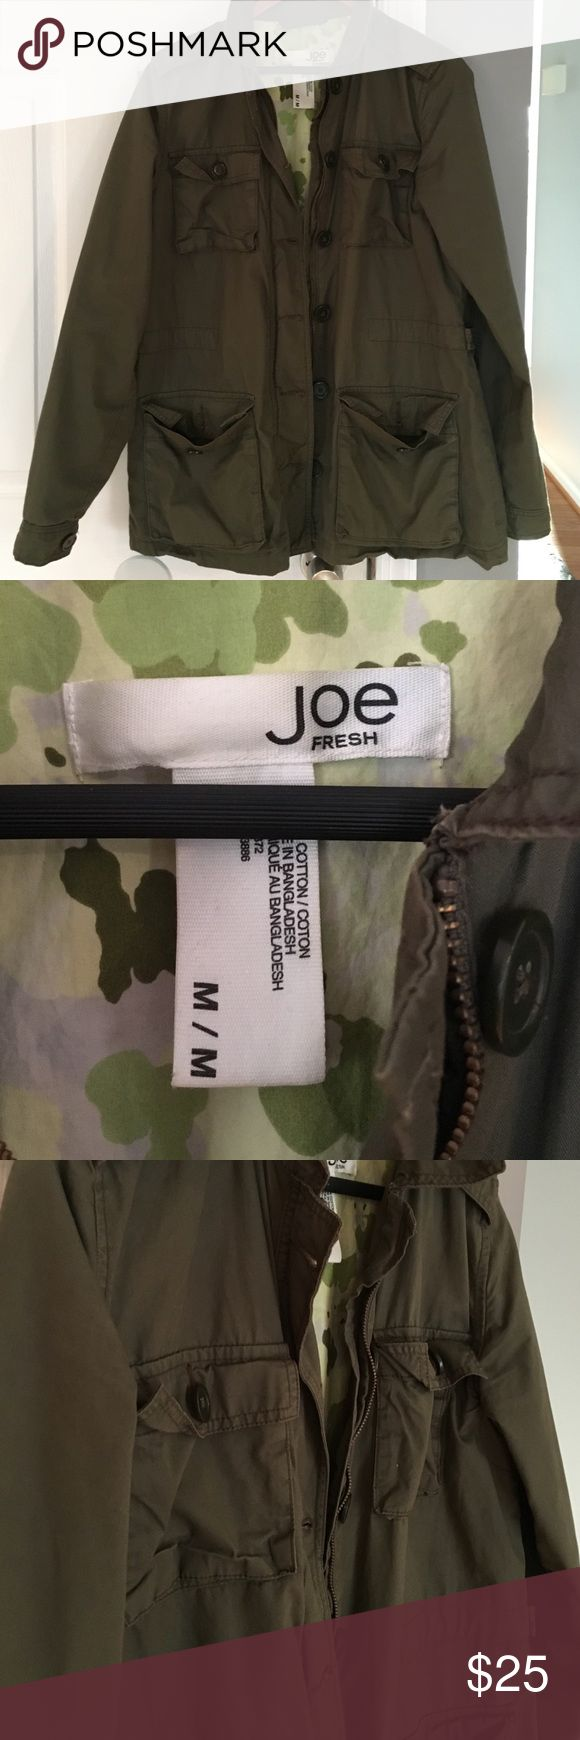 Joe Fresh Army Green Military Jacket Great condition! Spring staple, ❤❤ Joe Fresh Jackets & Coats Utility Jackets